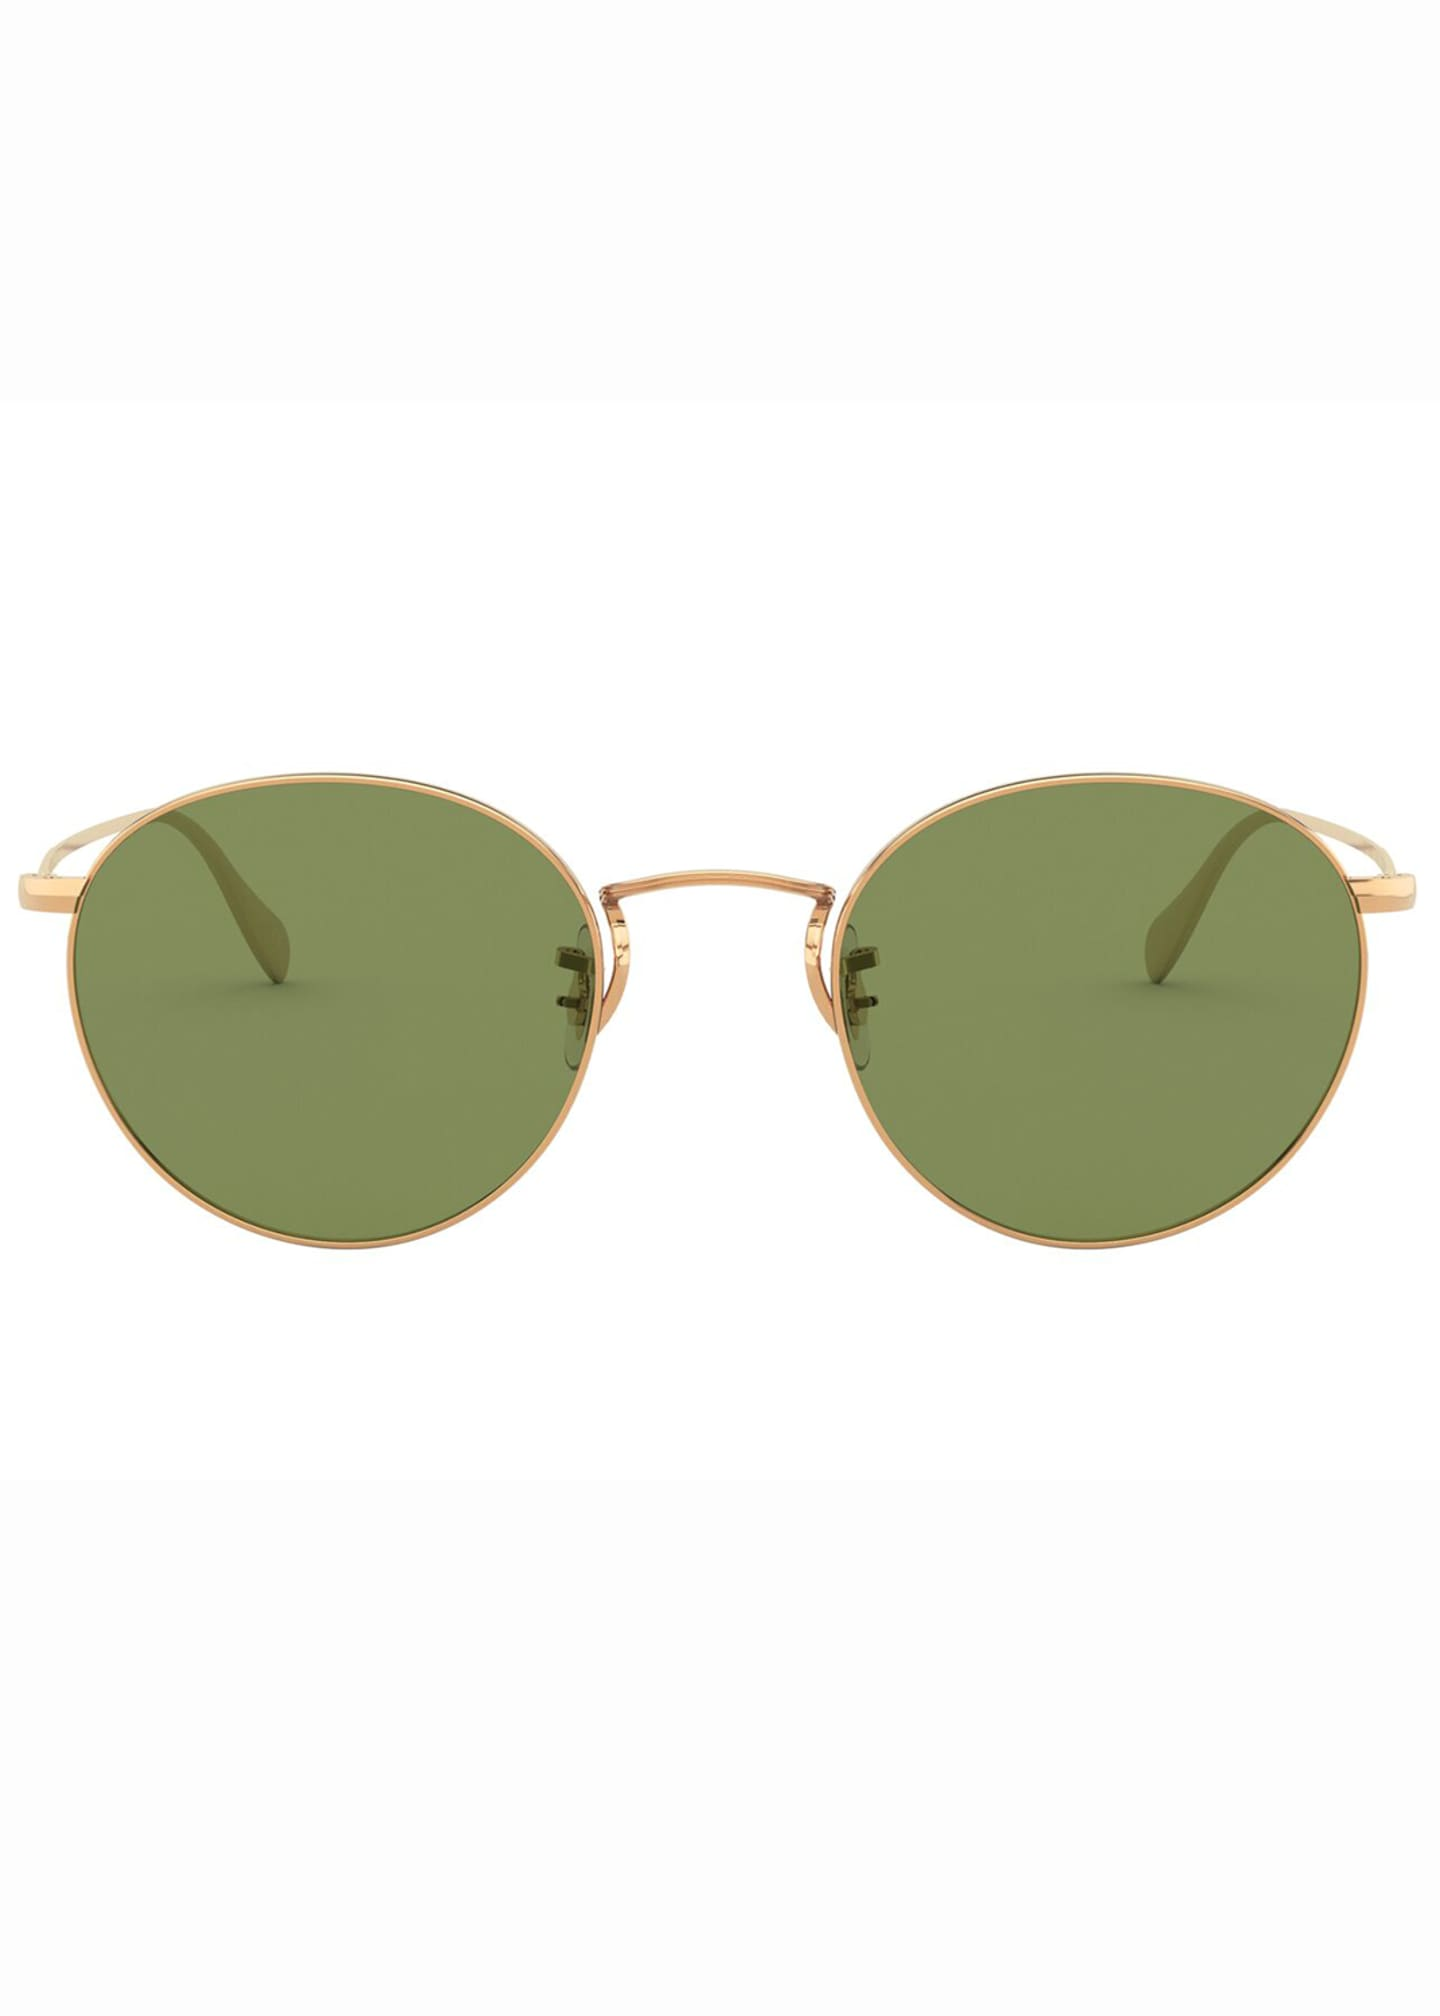 Image 2 of 2: Men's Coleridge Round Metal Aviator Sunglasses